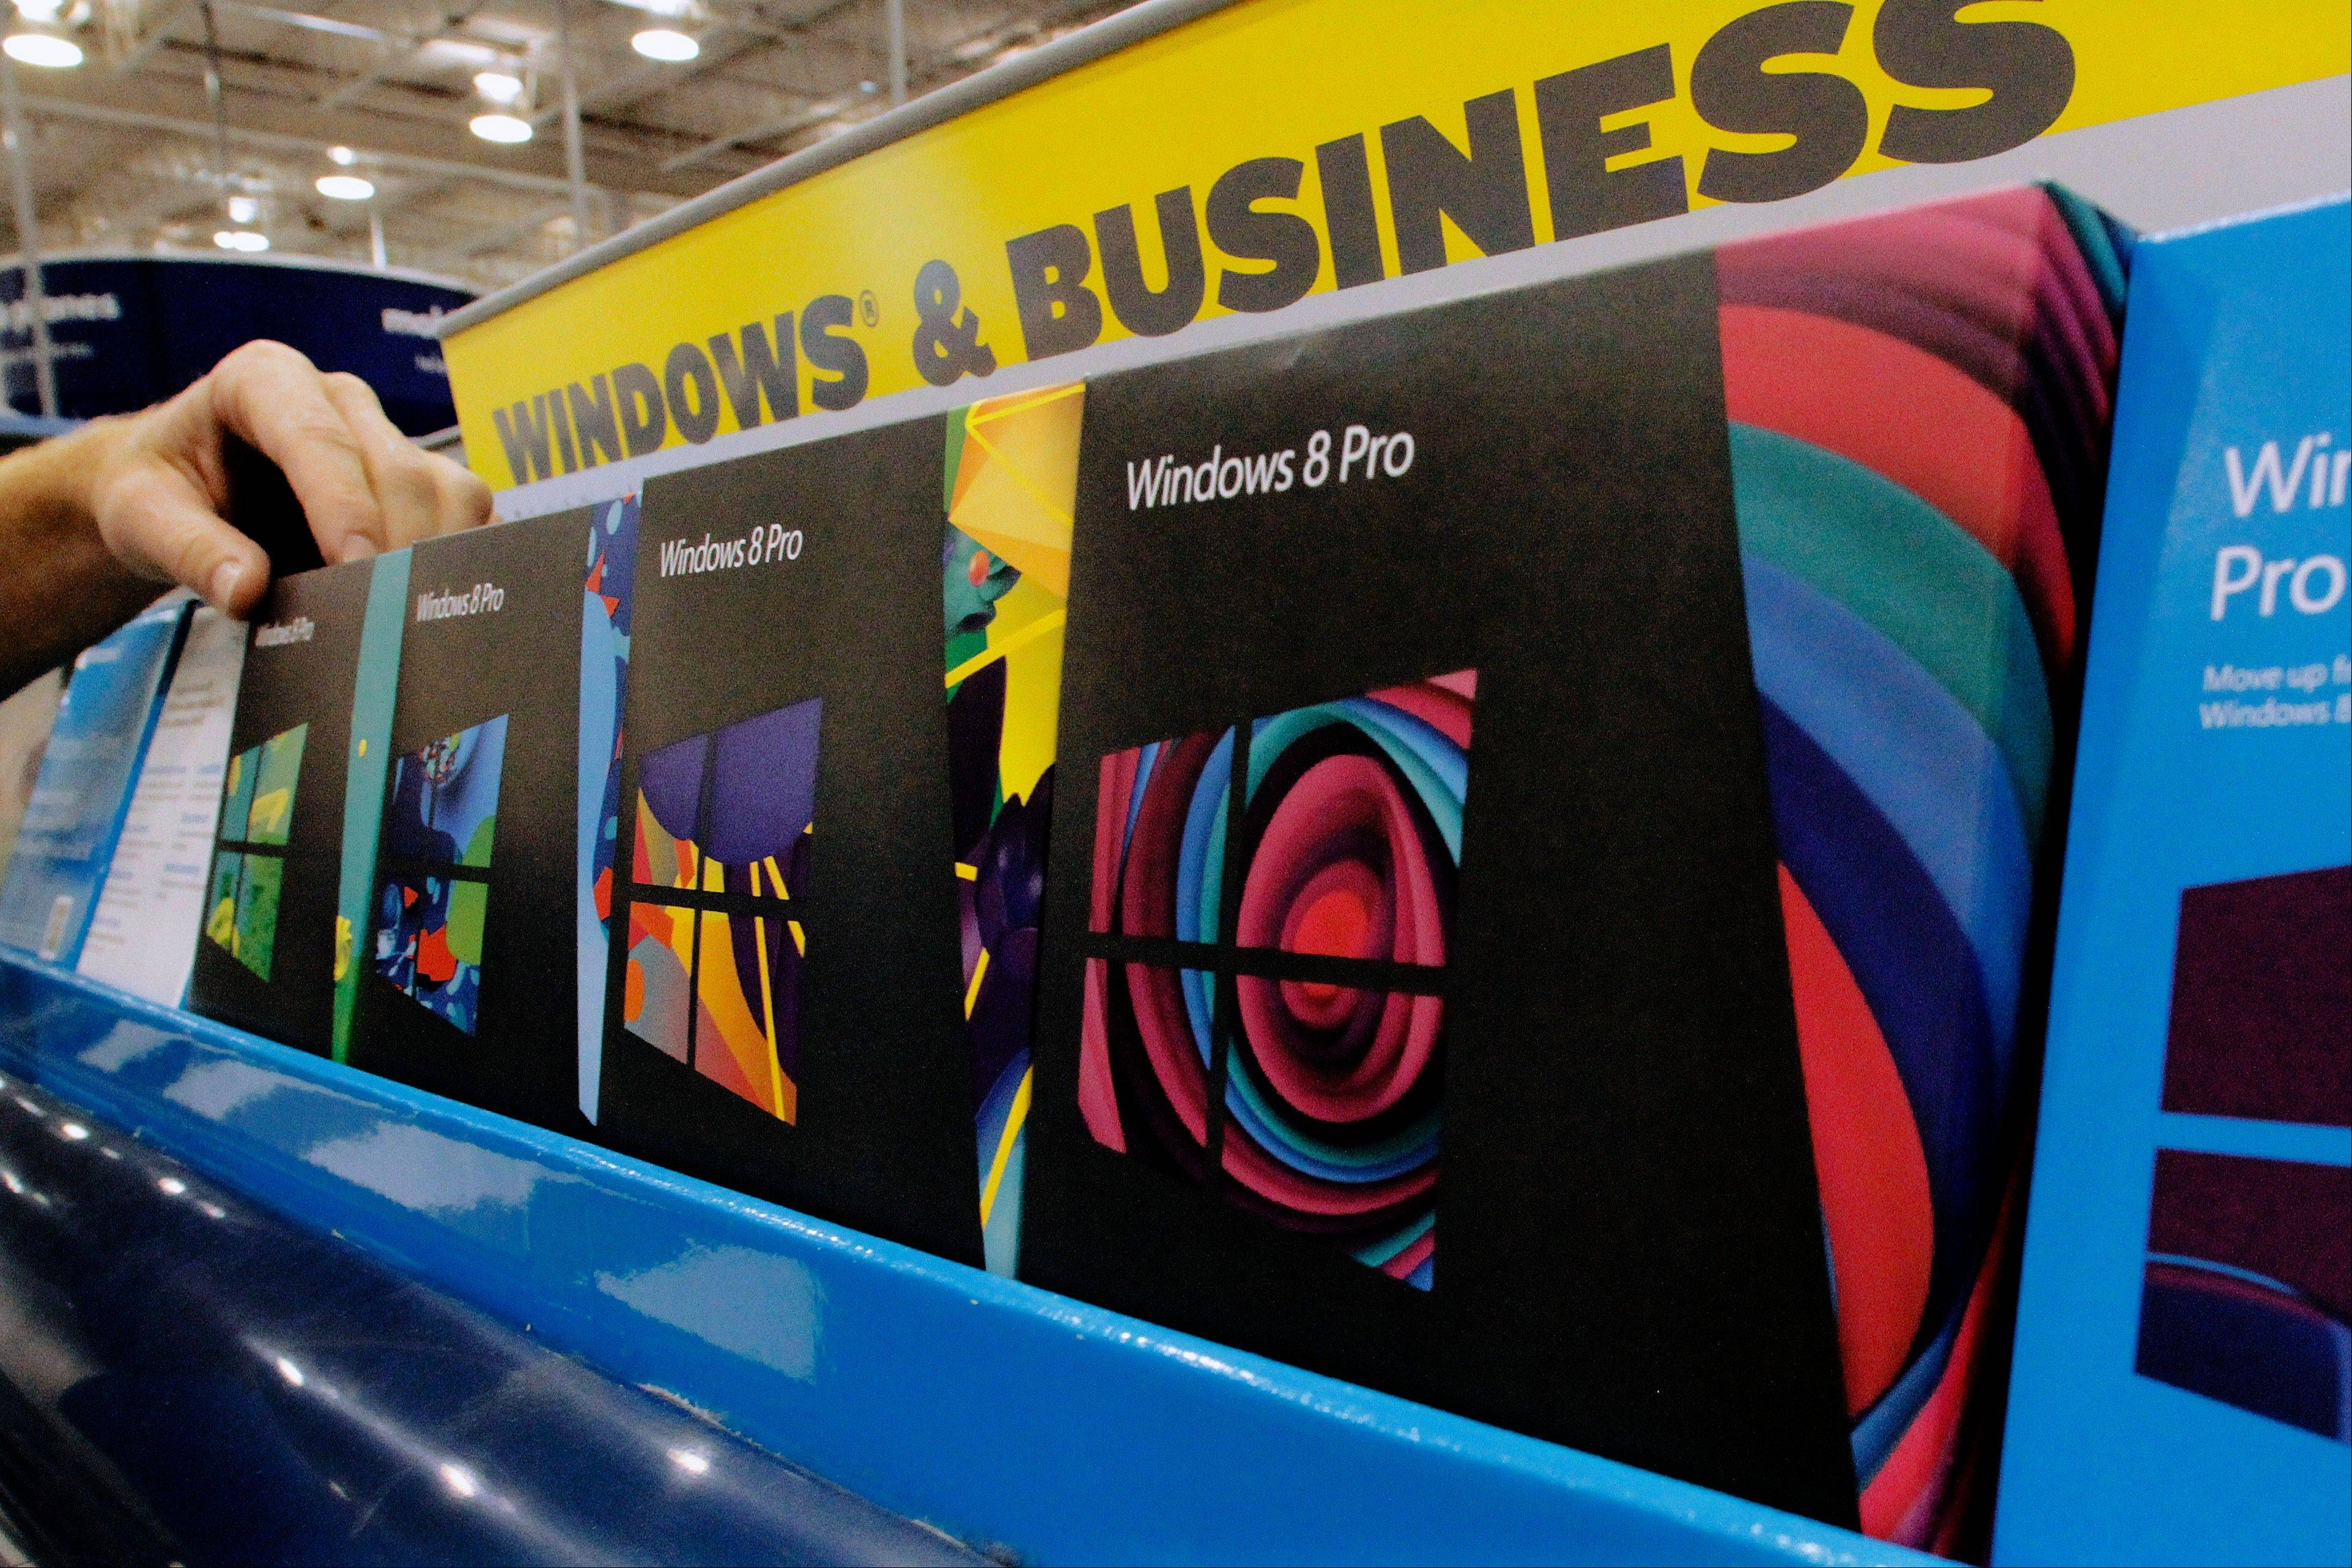 Different versions of the Microsoft Windows 8 operating system displayed during a media availability at Best Buy in Springfield.